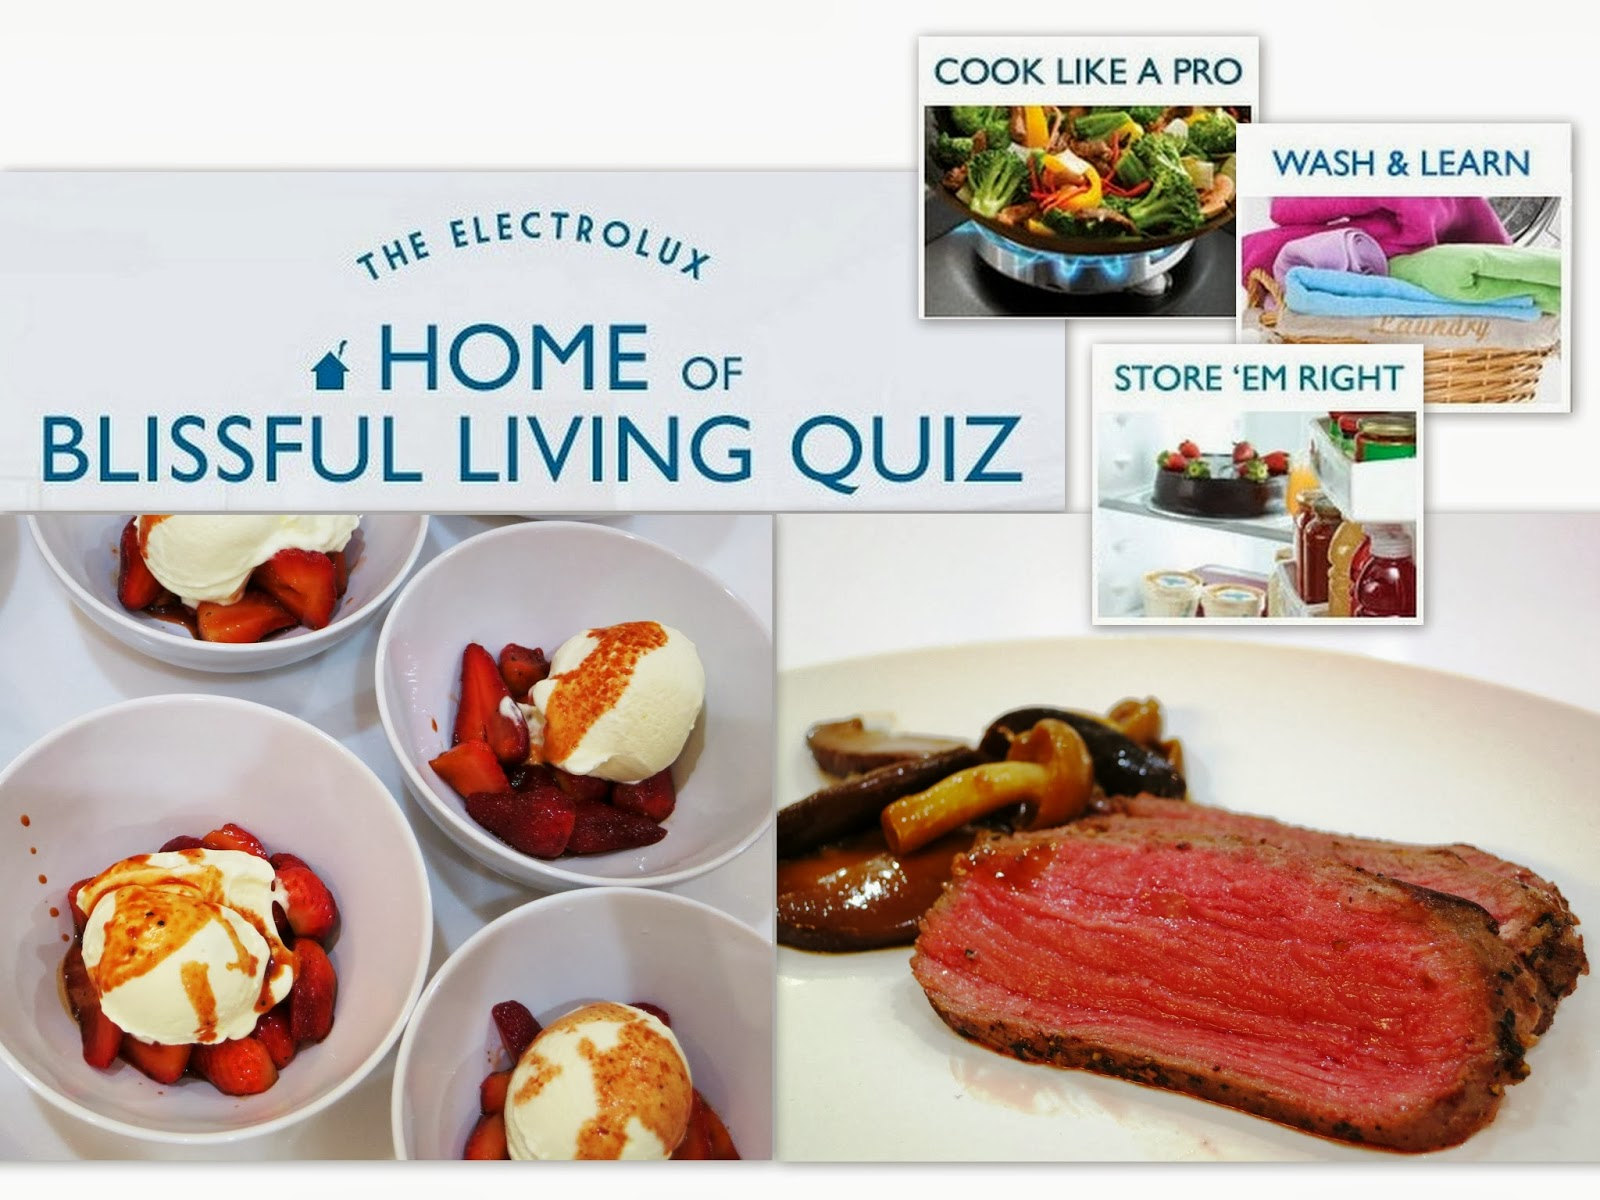 Pinkypiggu electrolux home of blissful living quiz win electrolux home of blissful living quiz win attractive prizes cooking demo recipes included forumfinder Image collections